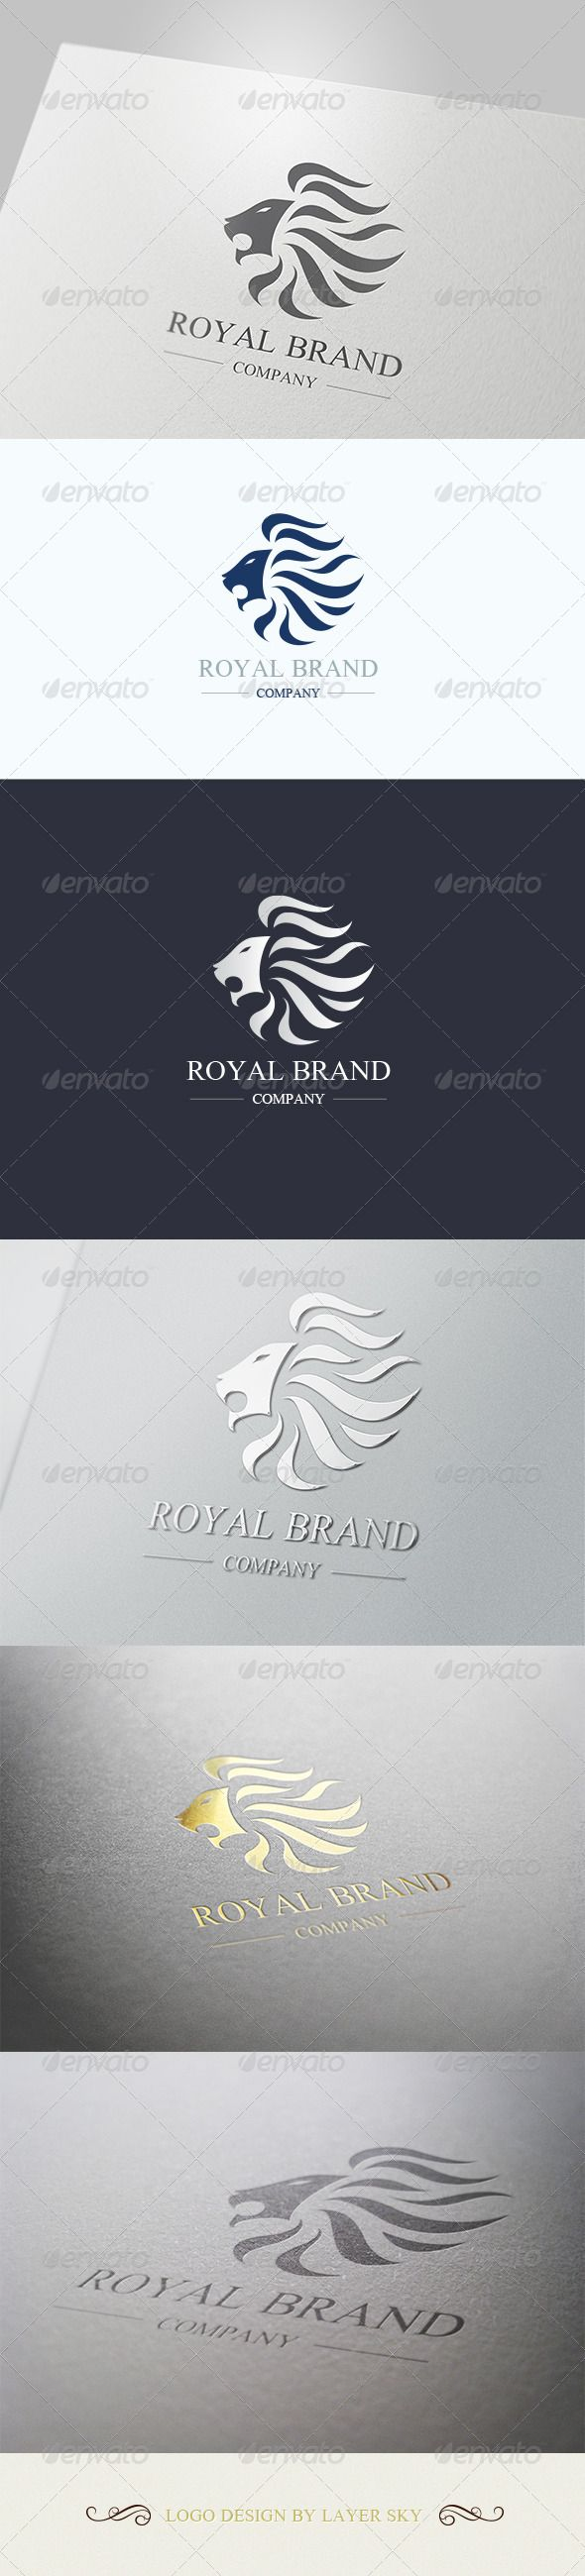 Lion Royal Brand Logo 1 — Vector EPS #happy #luxury • Download here → https://graphicriver.net/item/lion-royal-brand-logo-1/4106421?ref=pxcr